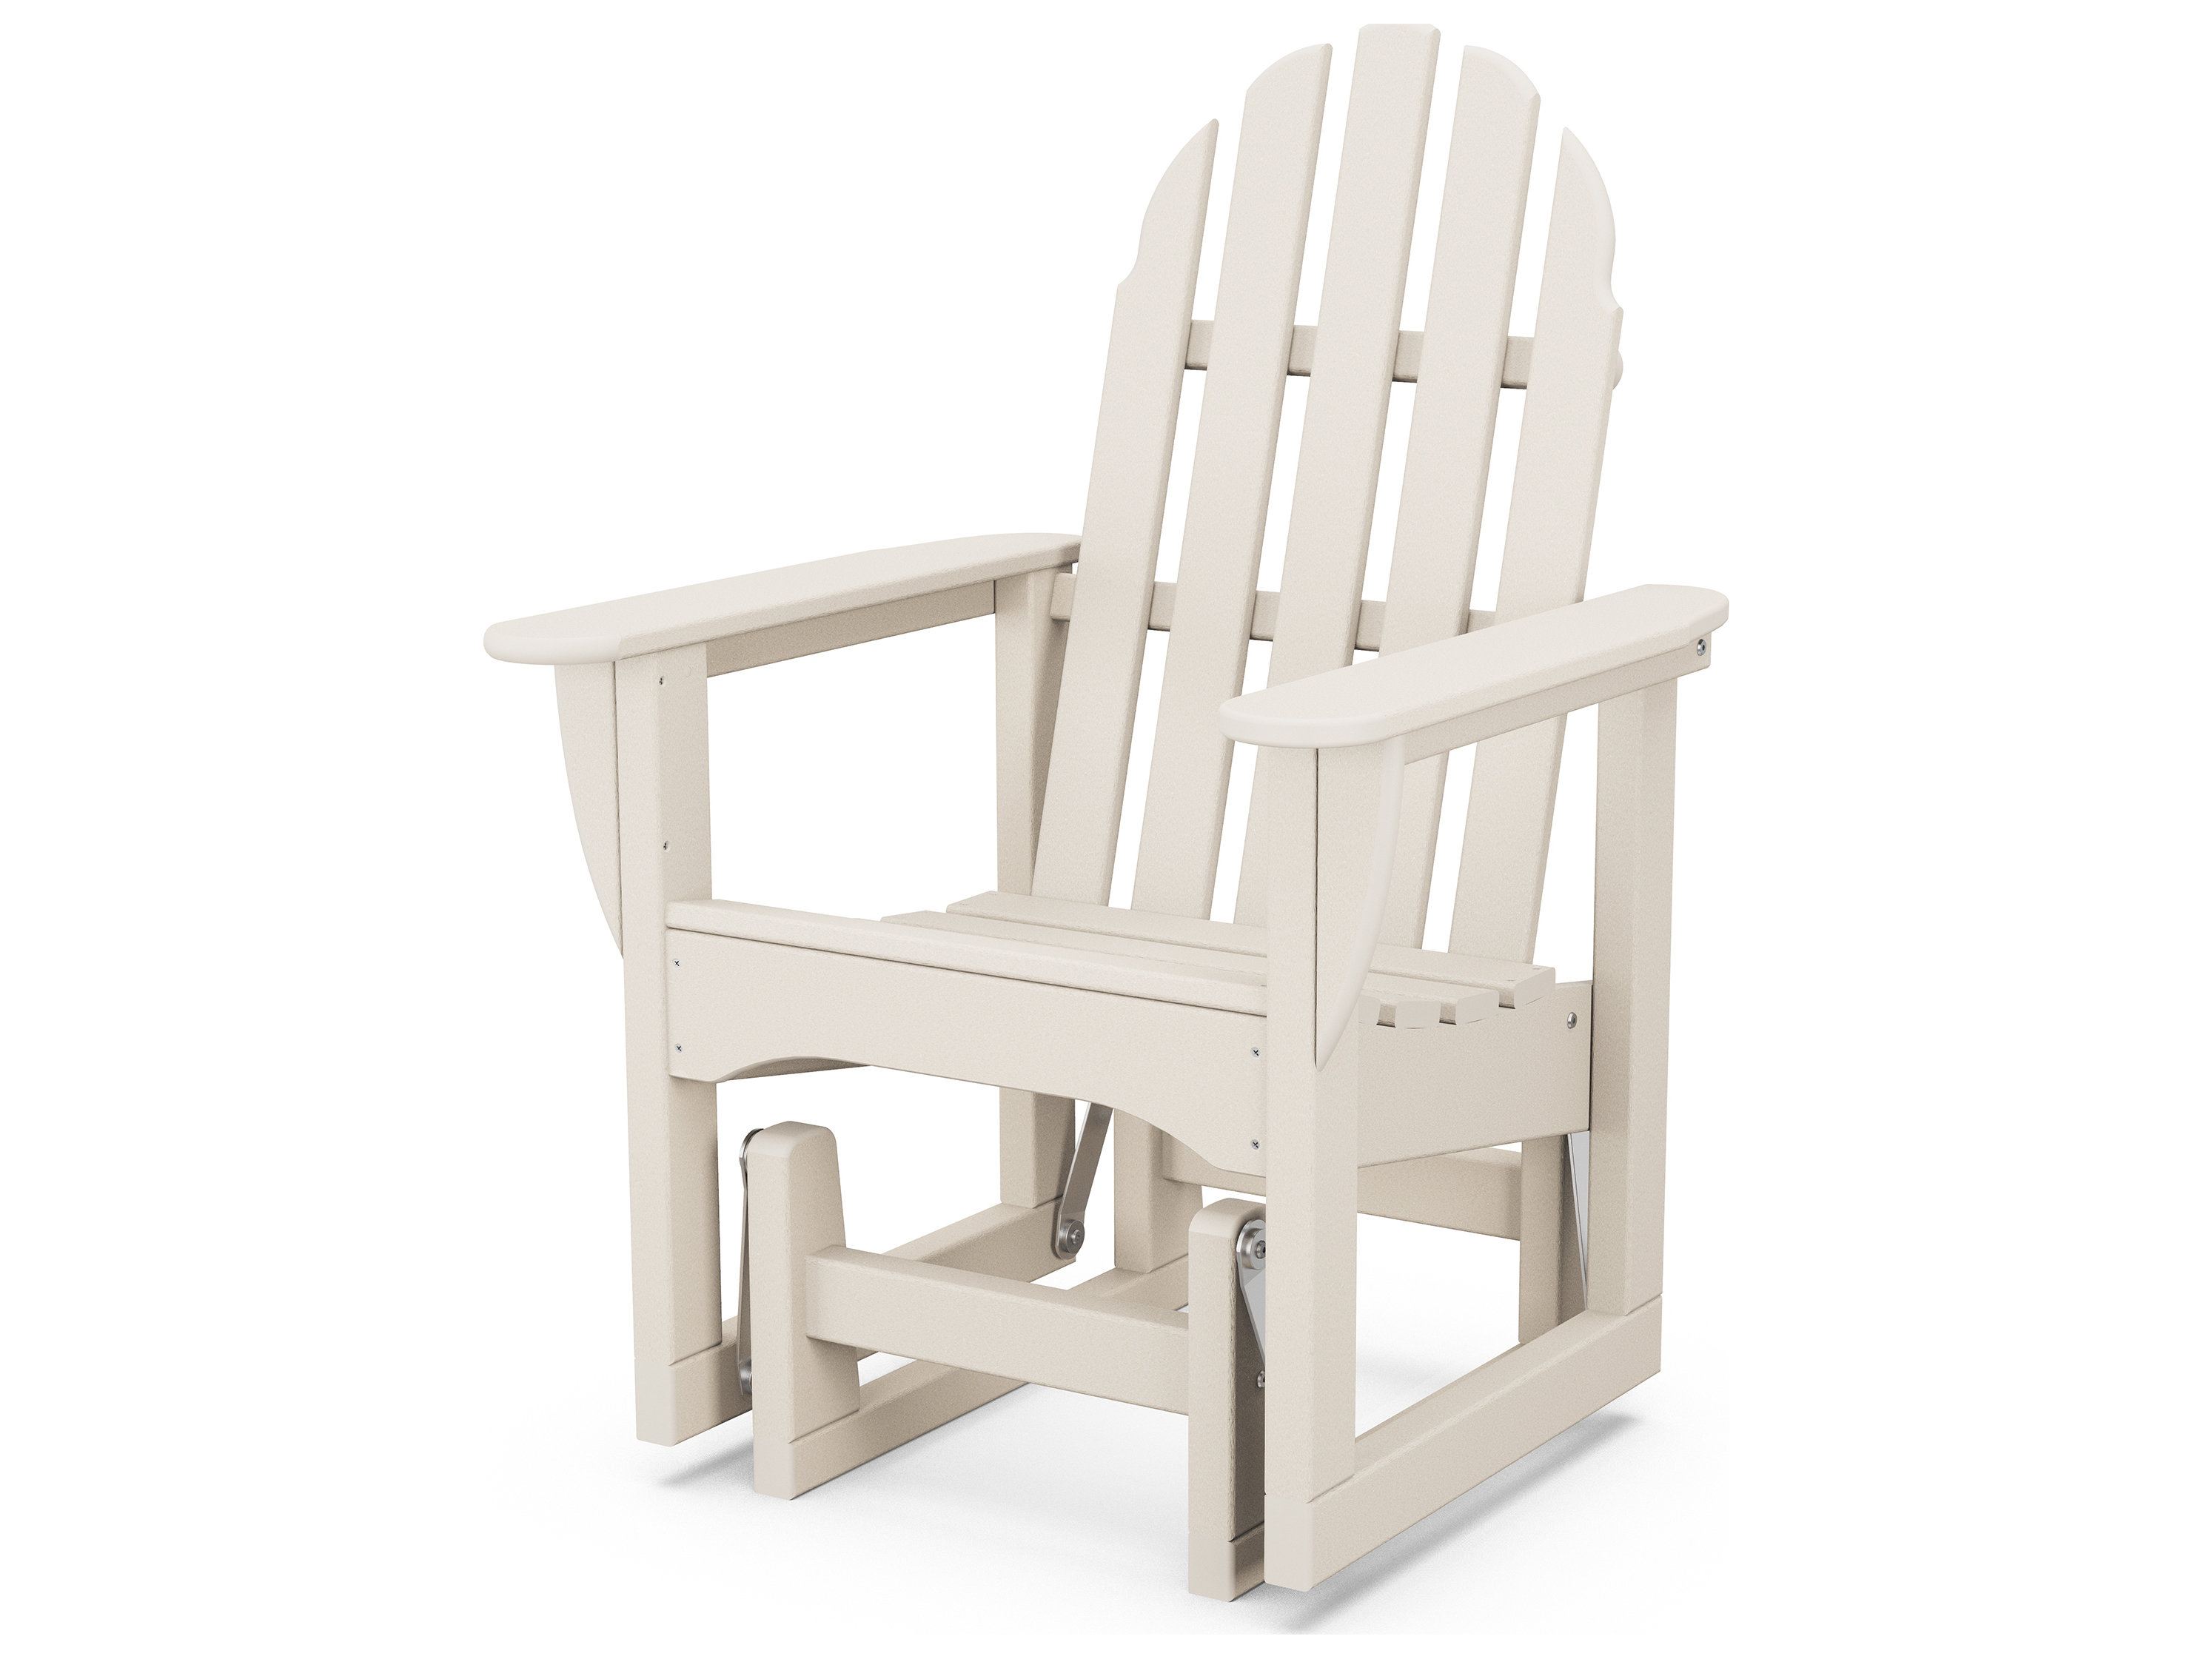 polywood classic adirondack chair fisher price table and chairs recycled plastic glider